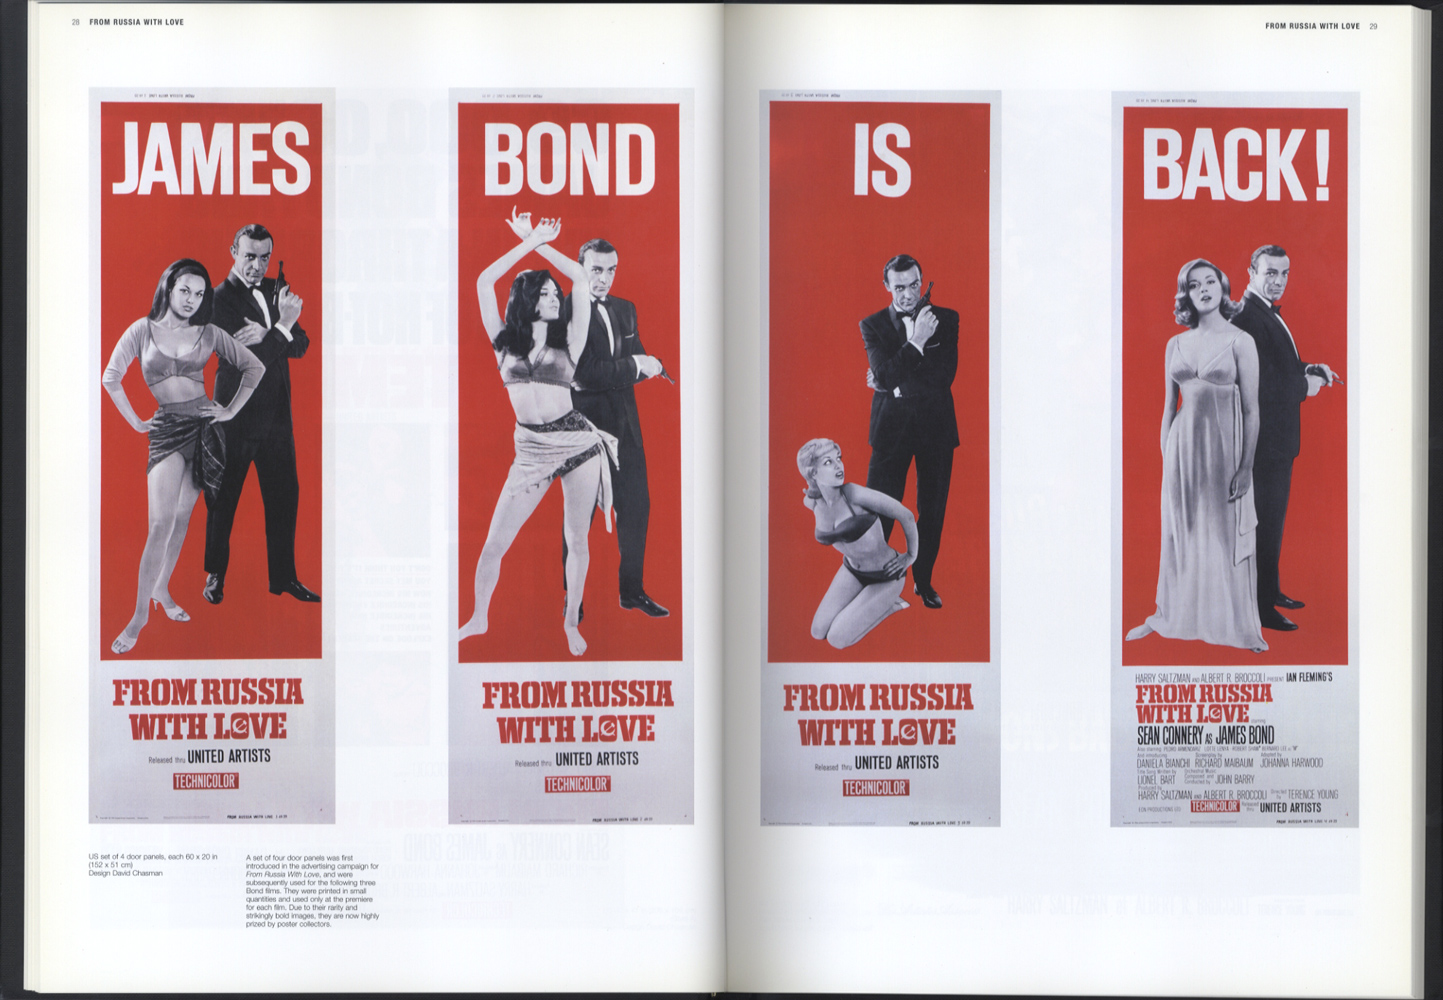 JAMES BOND MOVIE POSTERS THE OFFICIAL 007 COLLECTION[image3]